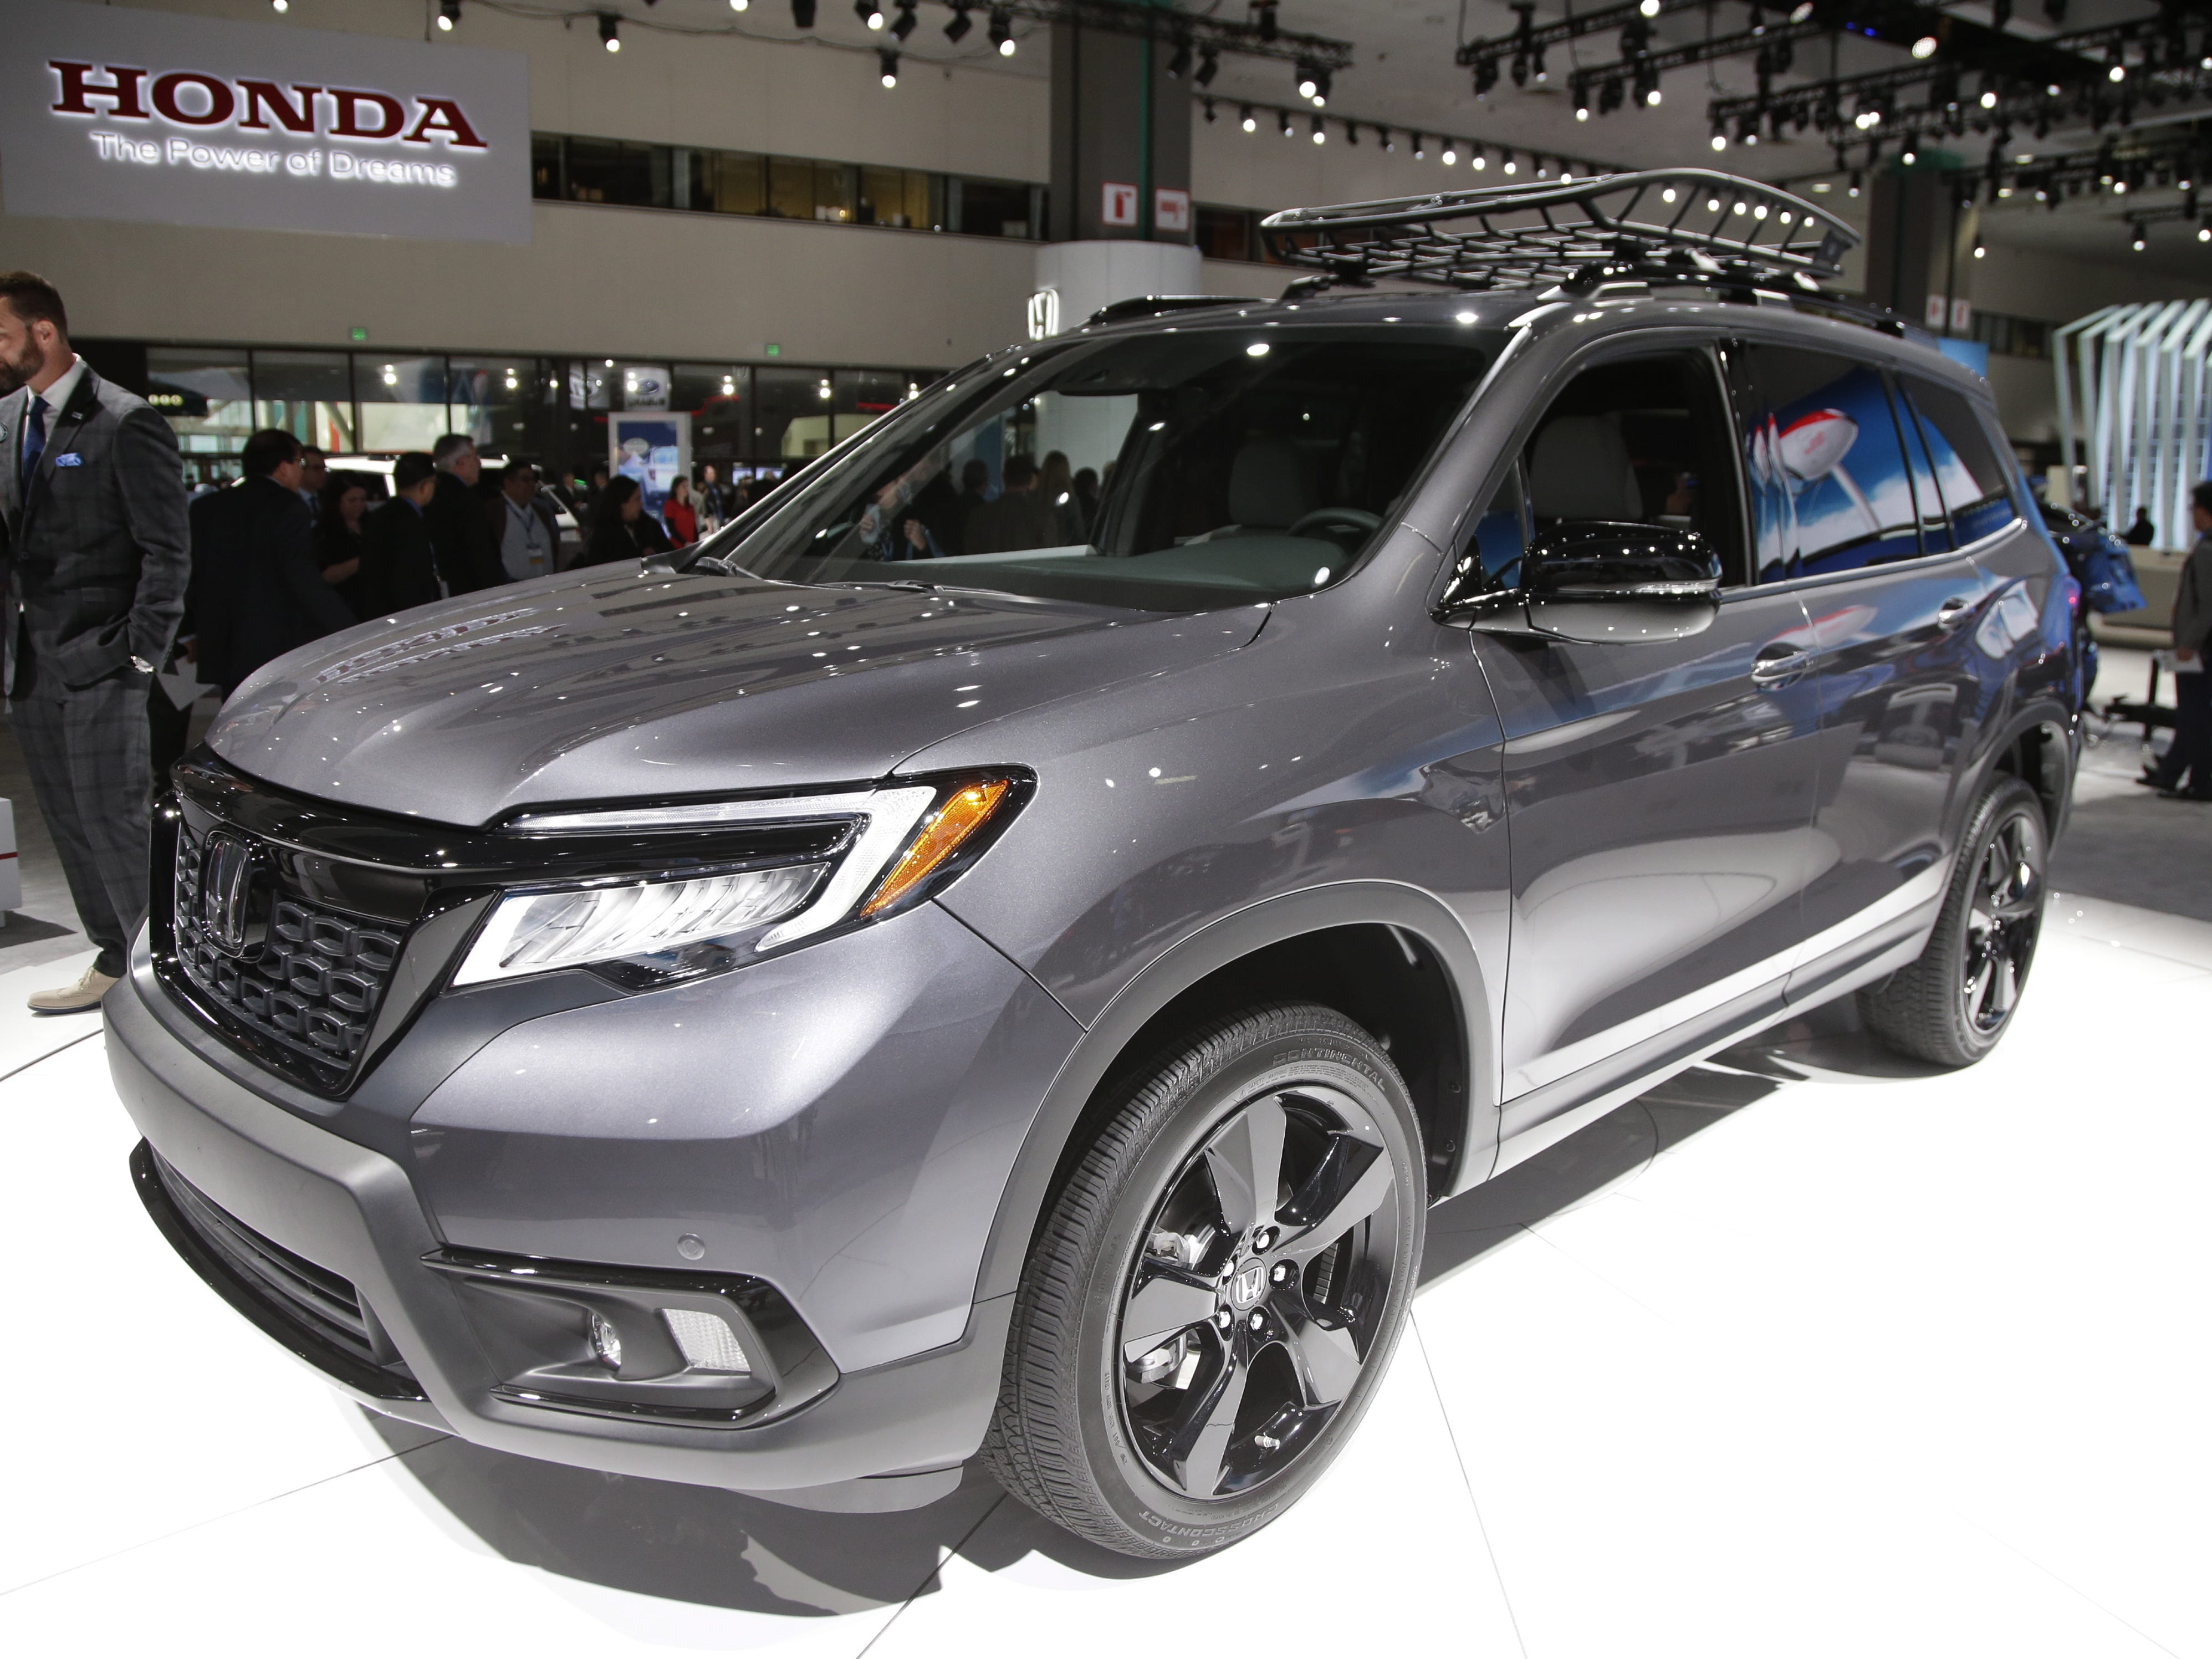 The Honda 2019 Passport AWD Elite is displayed at the Automobility LA auto show. Nov. 28, 2018. Honda plans to begin selling the Honda Passport SUV later this year. It's a remake of the Passport SUV sold in the 1990s,